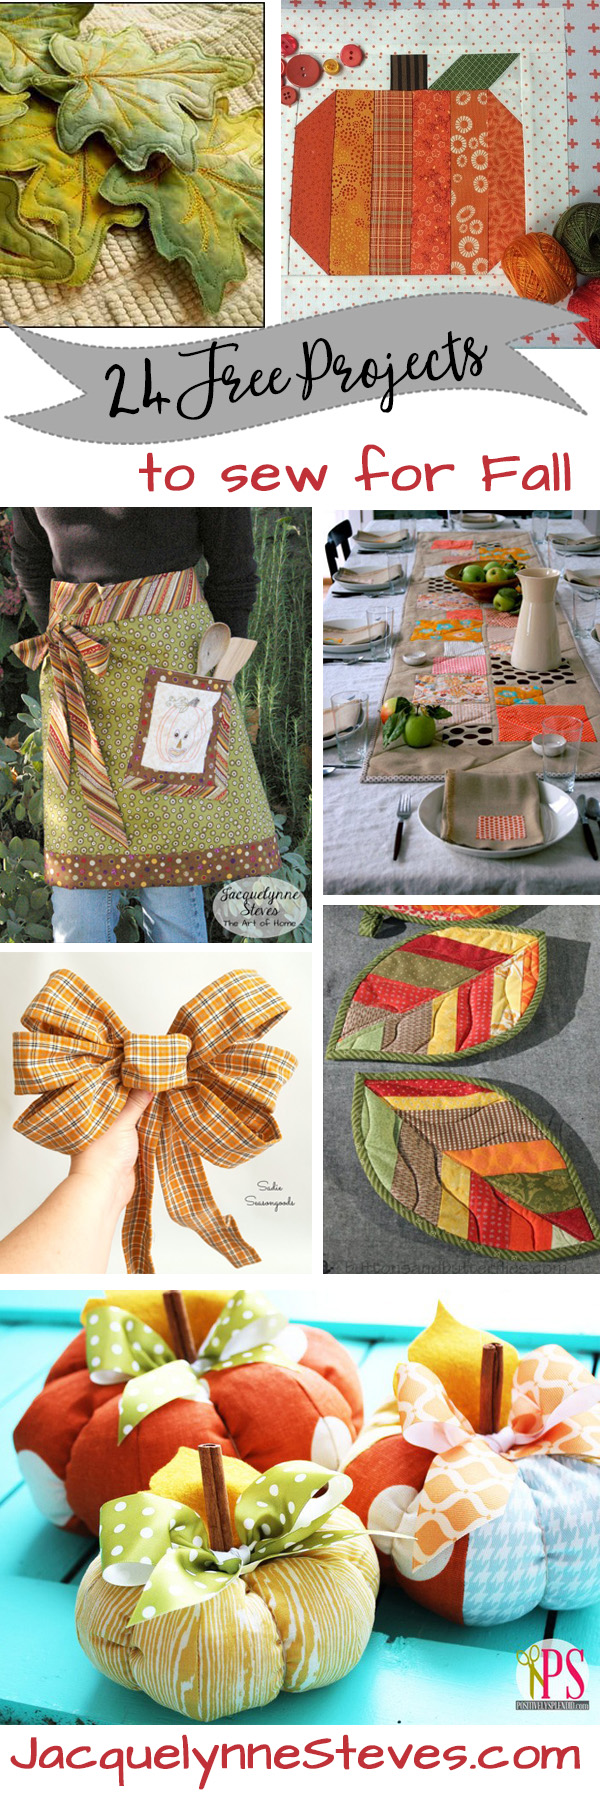 24 Free Projects to Sew for Fall